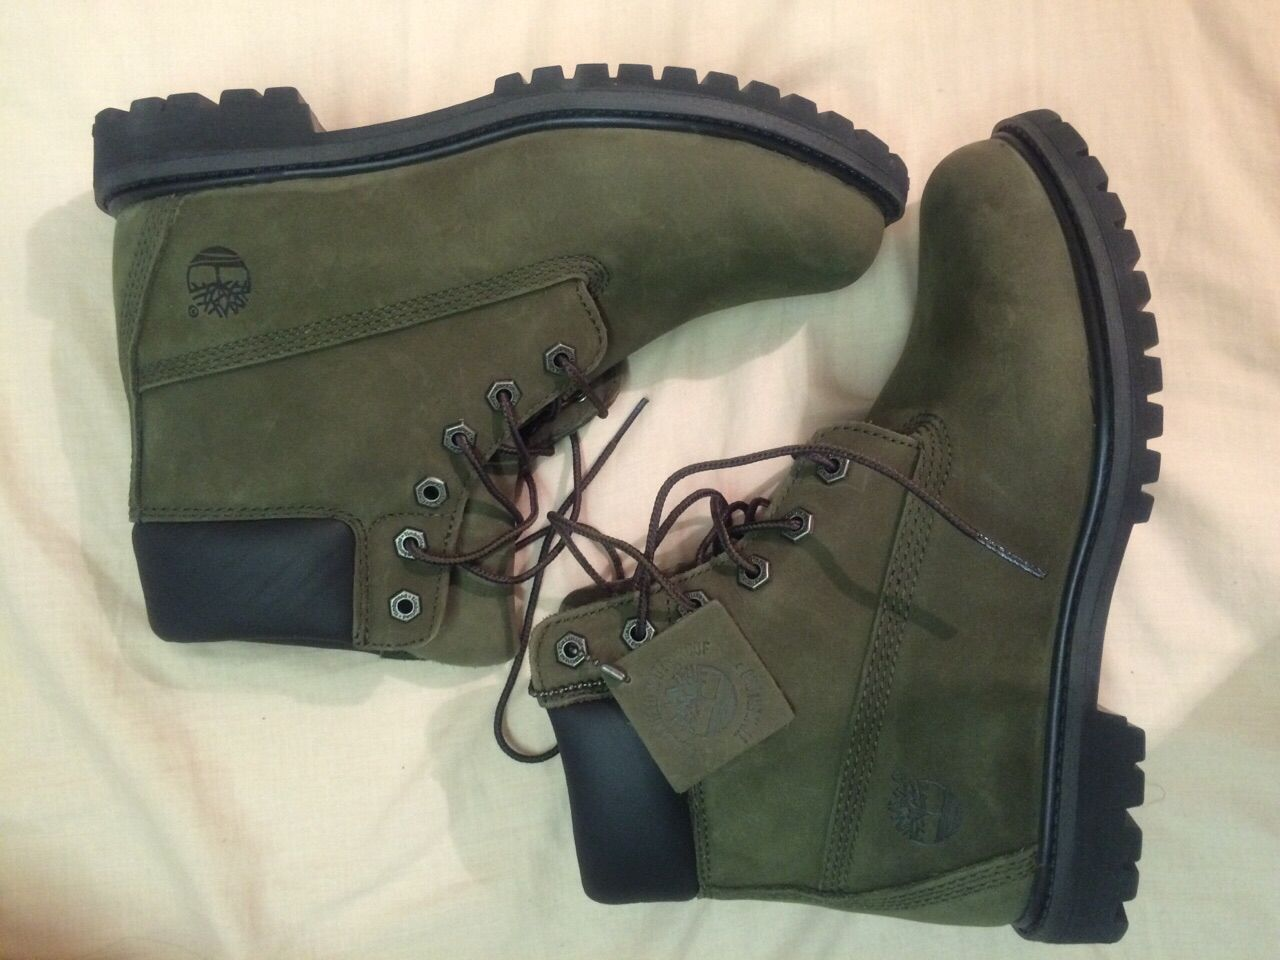 categorytimberland These